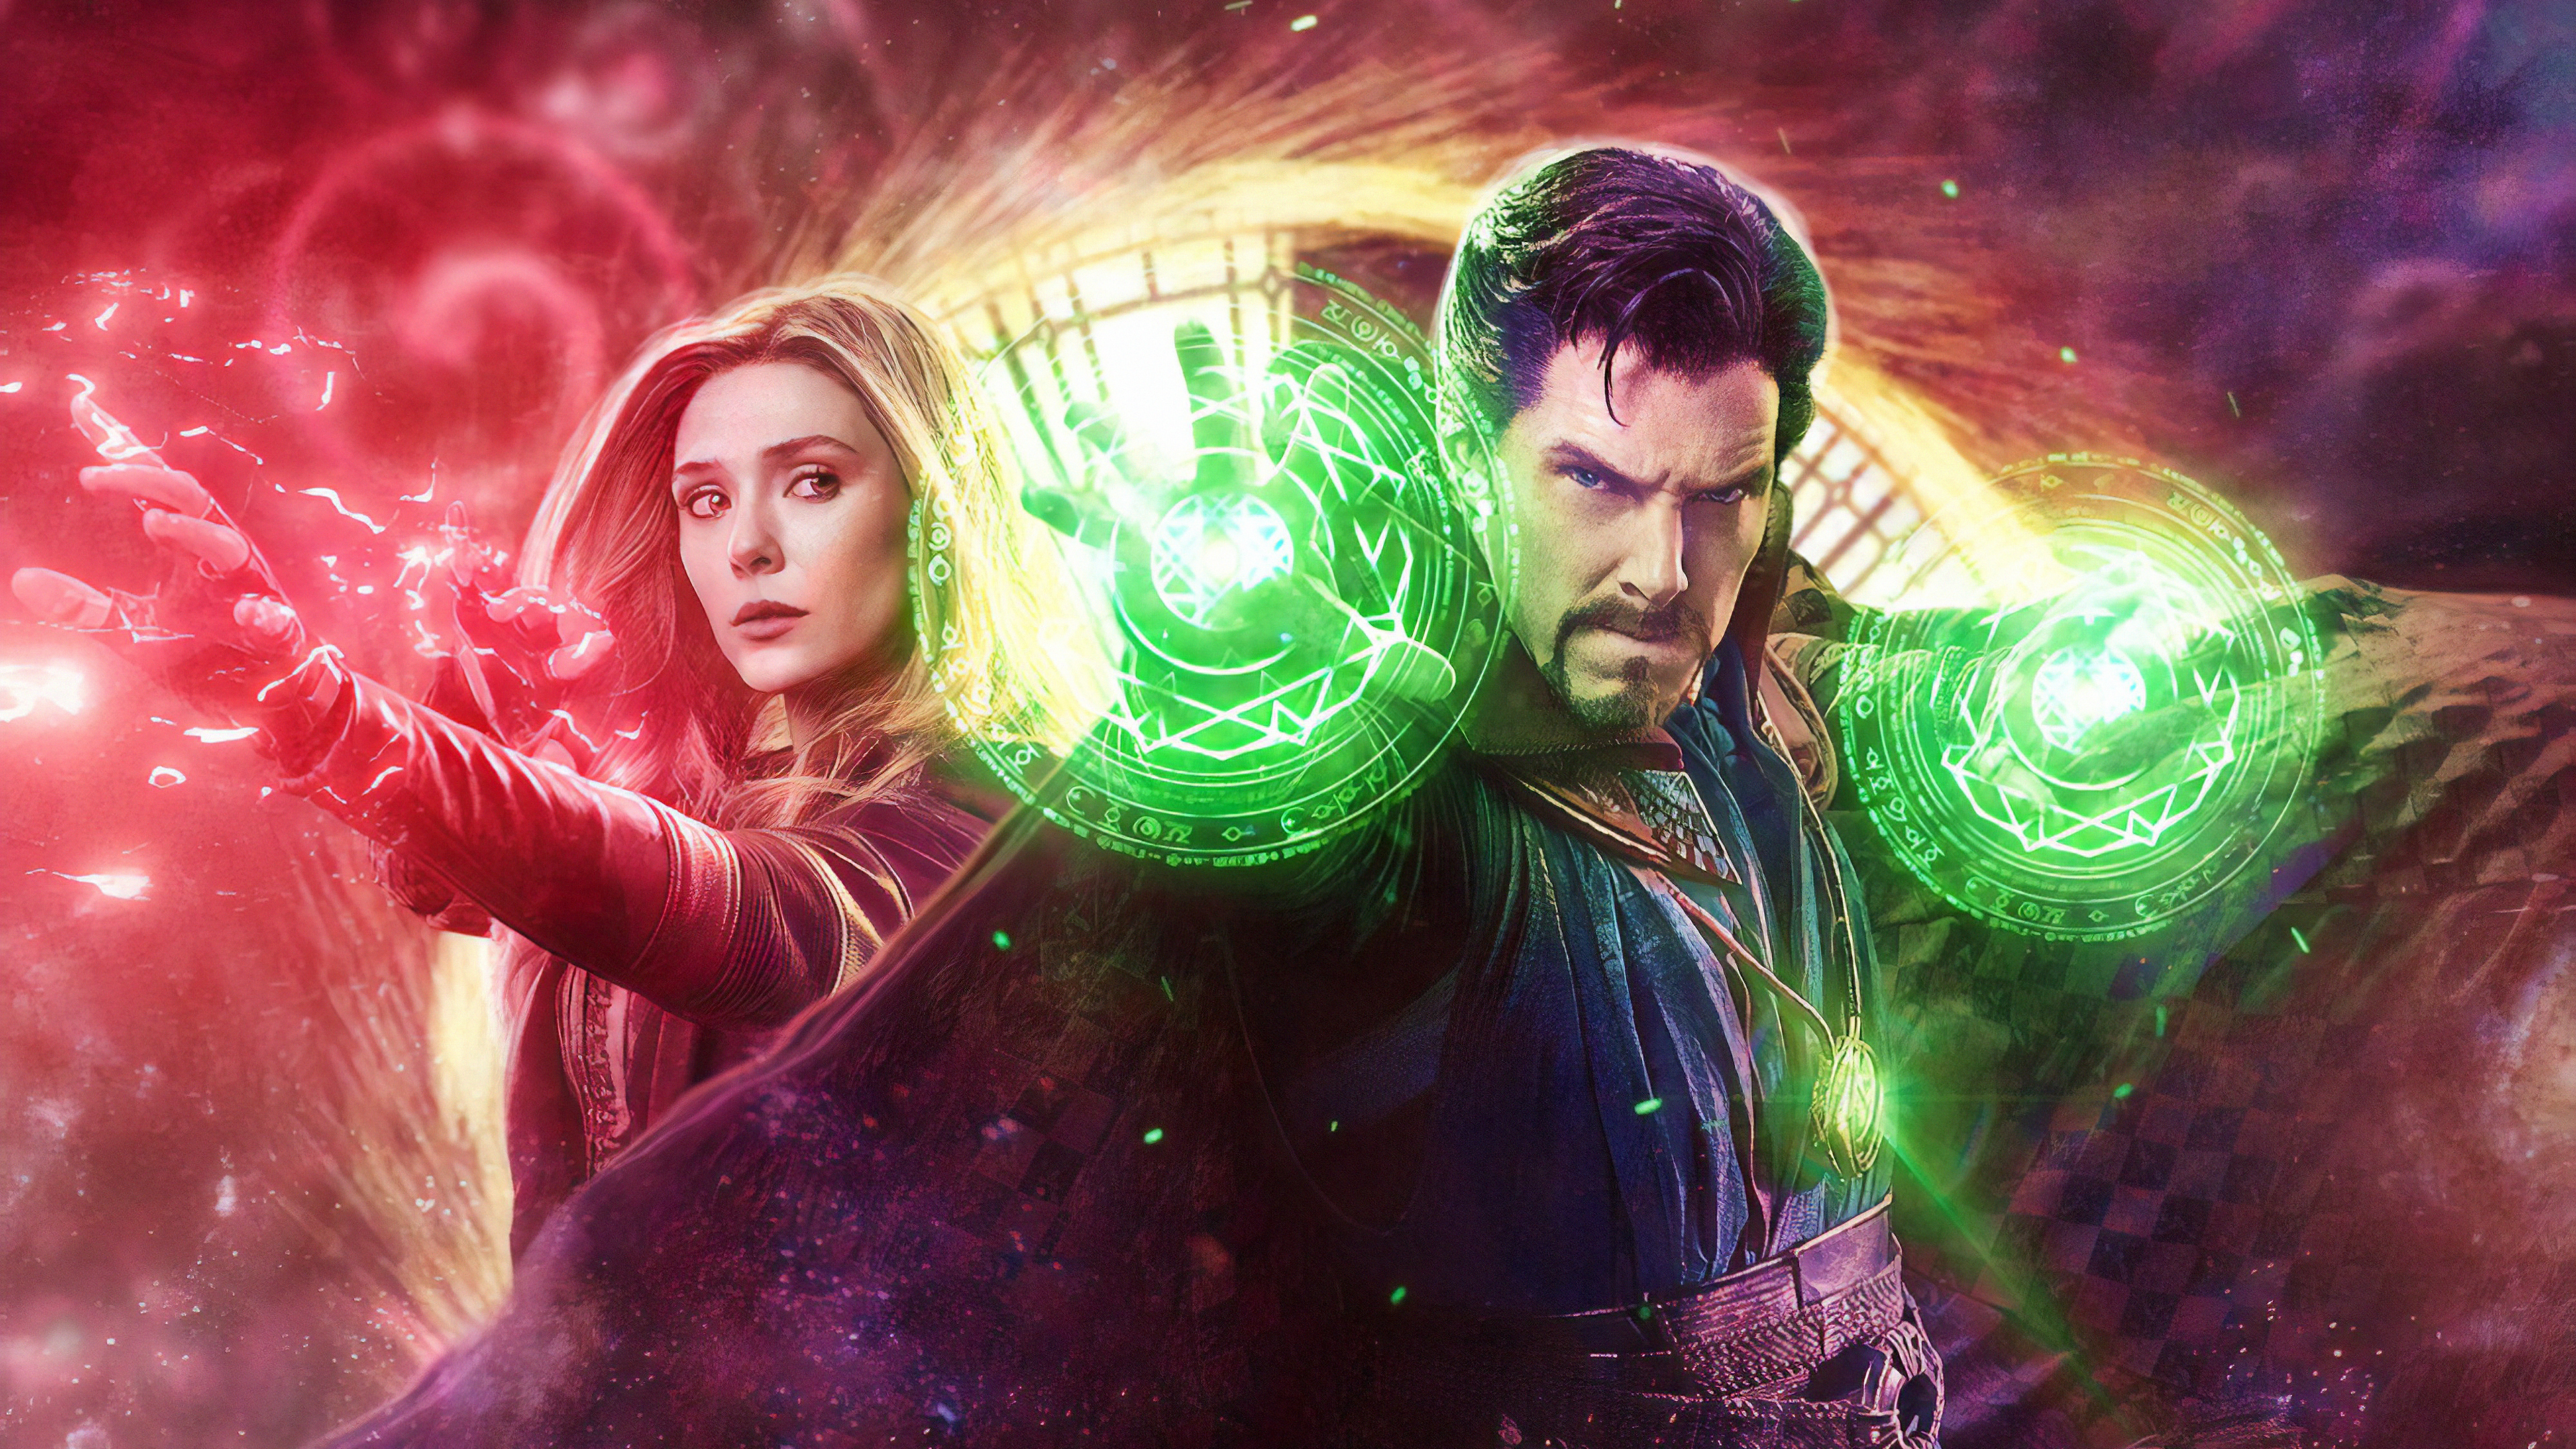 doctor strange in the multiverse of madness 1565053792 - Doctor Strange In The Multiverse Of Madness - movies wallpapers, hd-wallpapers, doctor strange in the multiverse of madness wallpapers, artwork wallpapers, artstation wallpapers, 4k-wallpapers, 2021 movies wallpapers